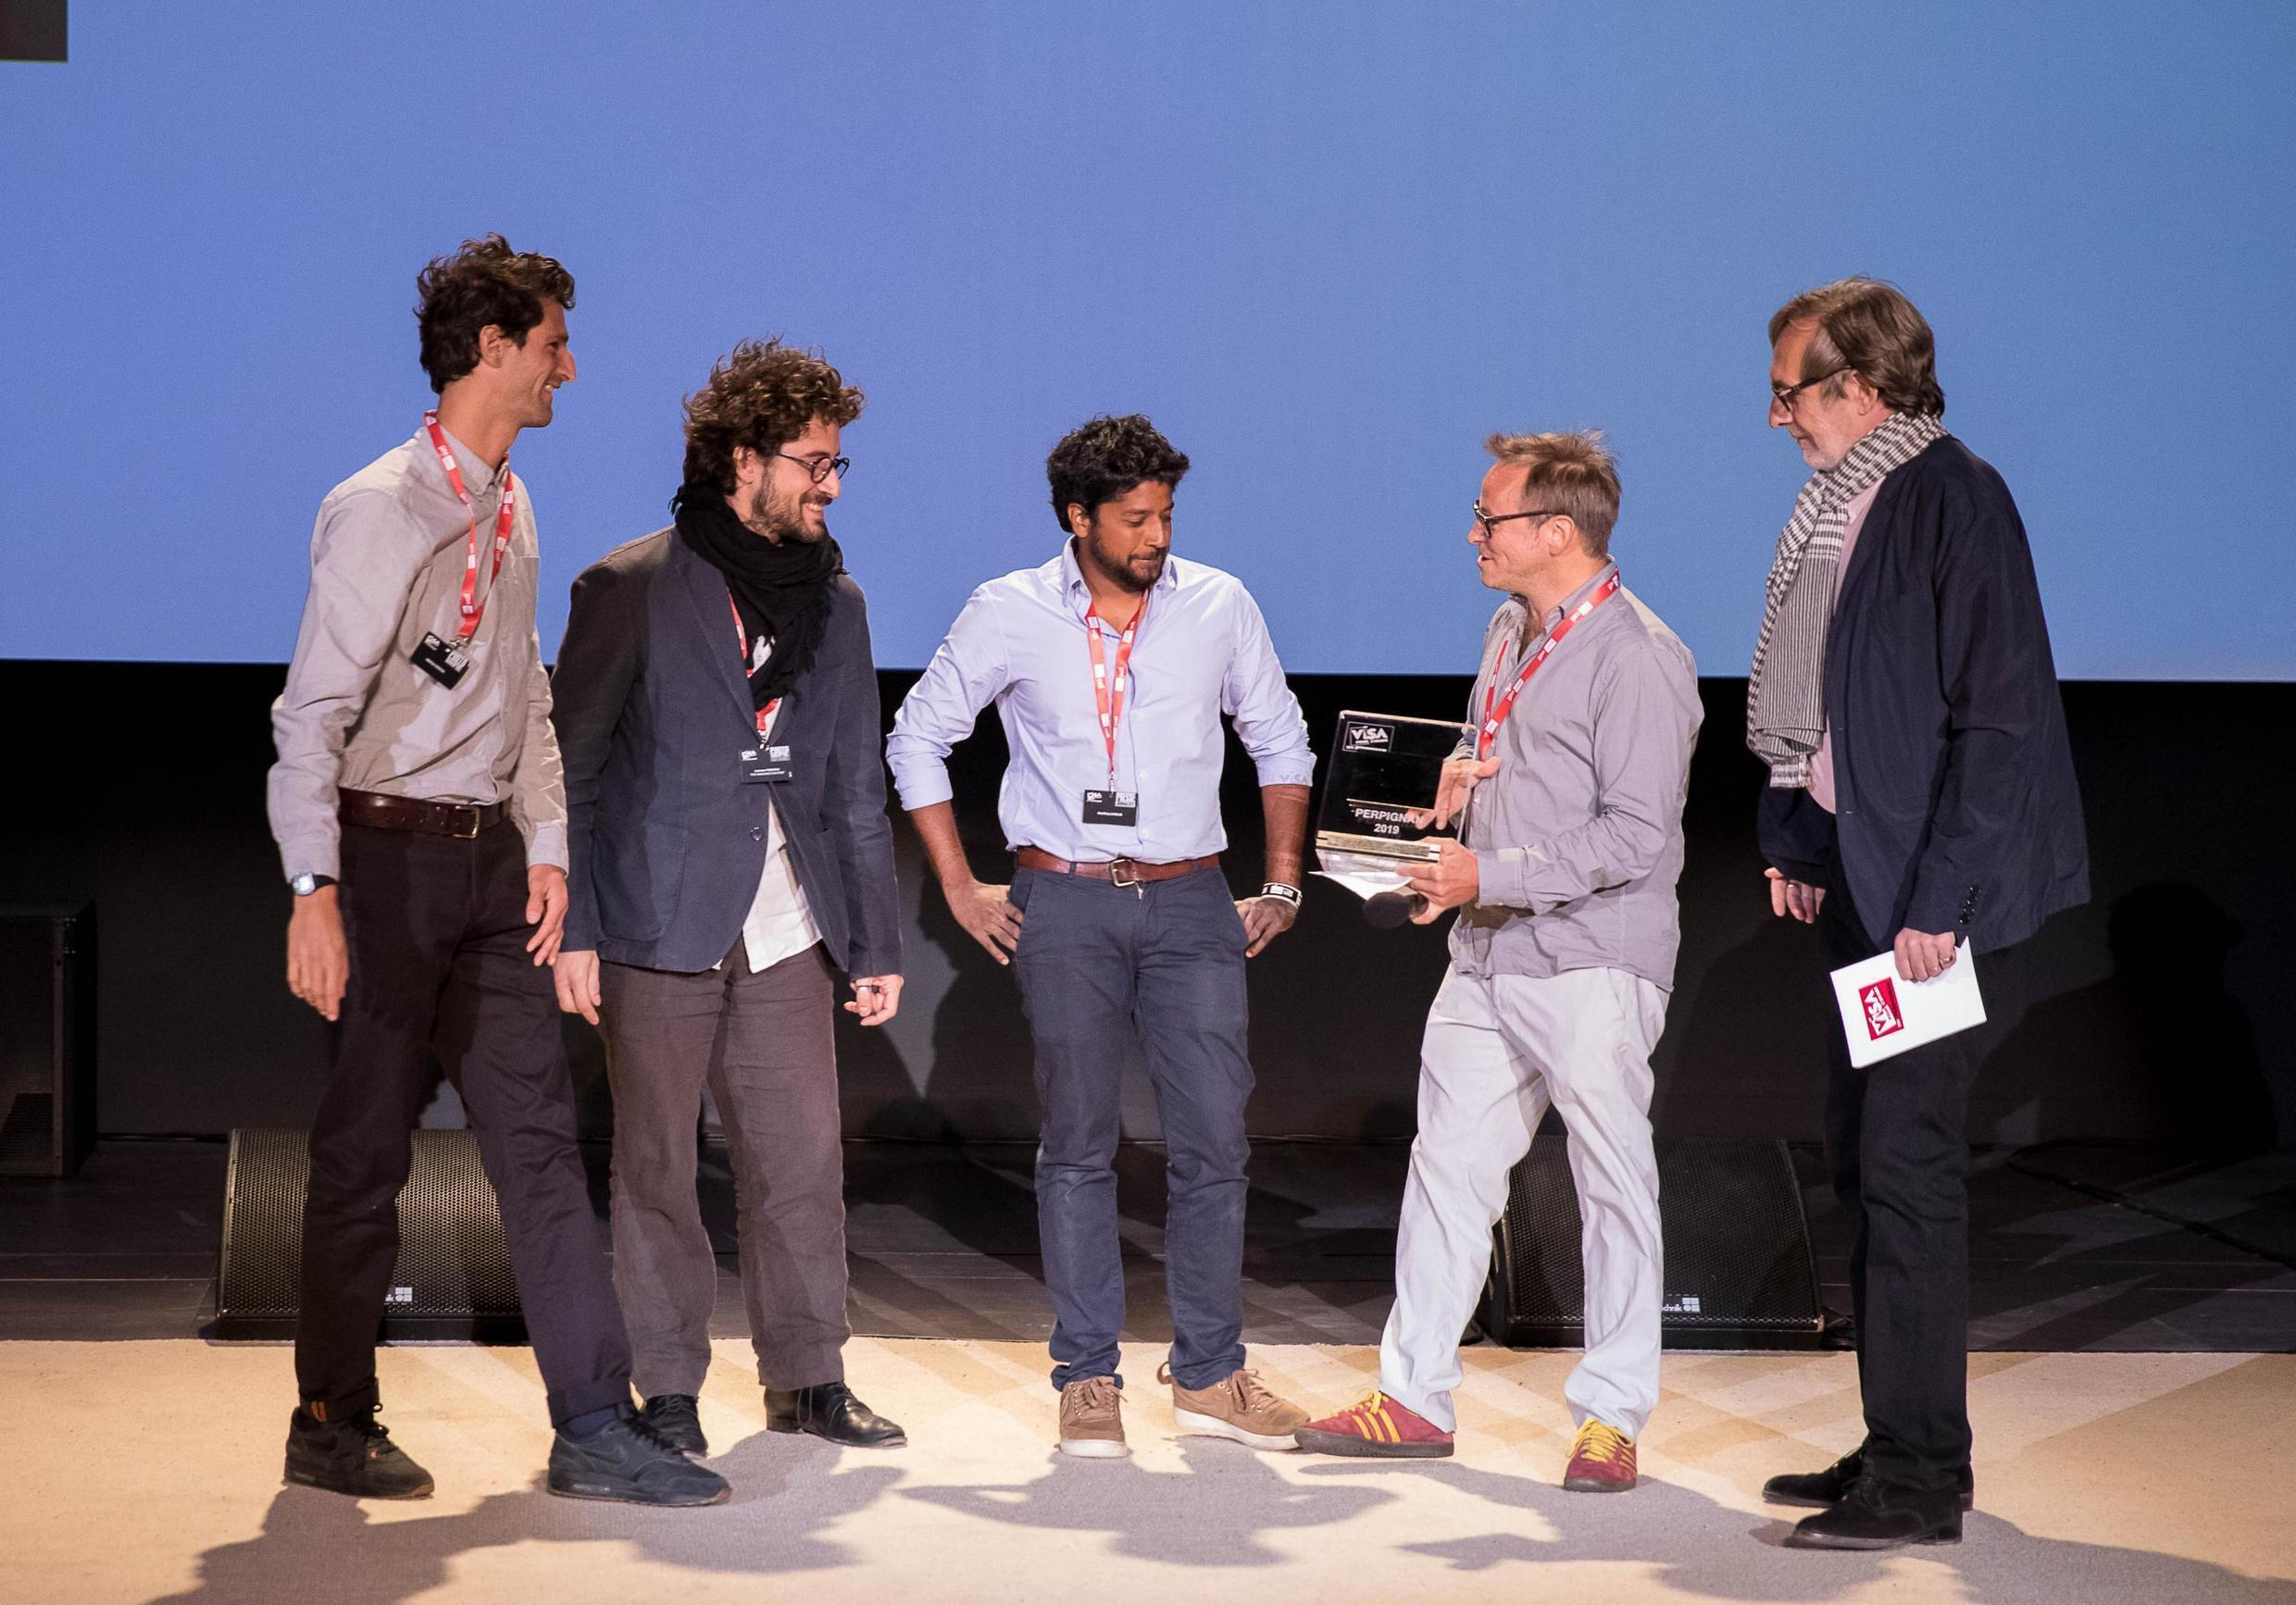 (left to right) Mathias Desta and Geoffrey Livolsi, co-founders of Disclose and photojournalist Lorenzo Tugnoli accepting their award, September 5, 2019